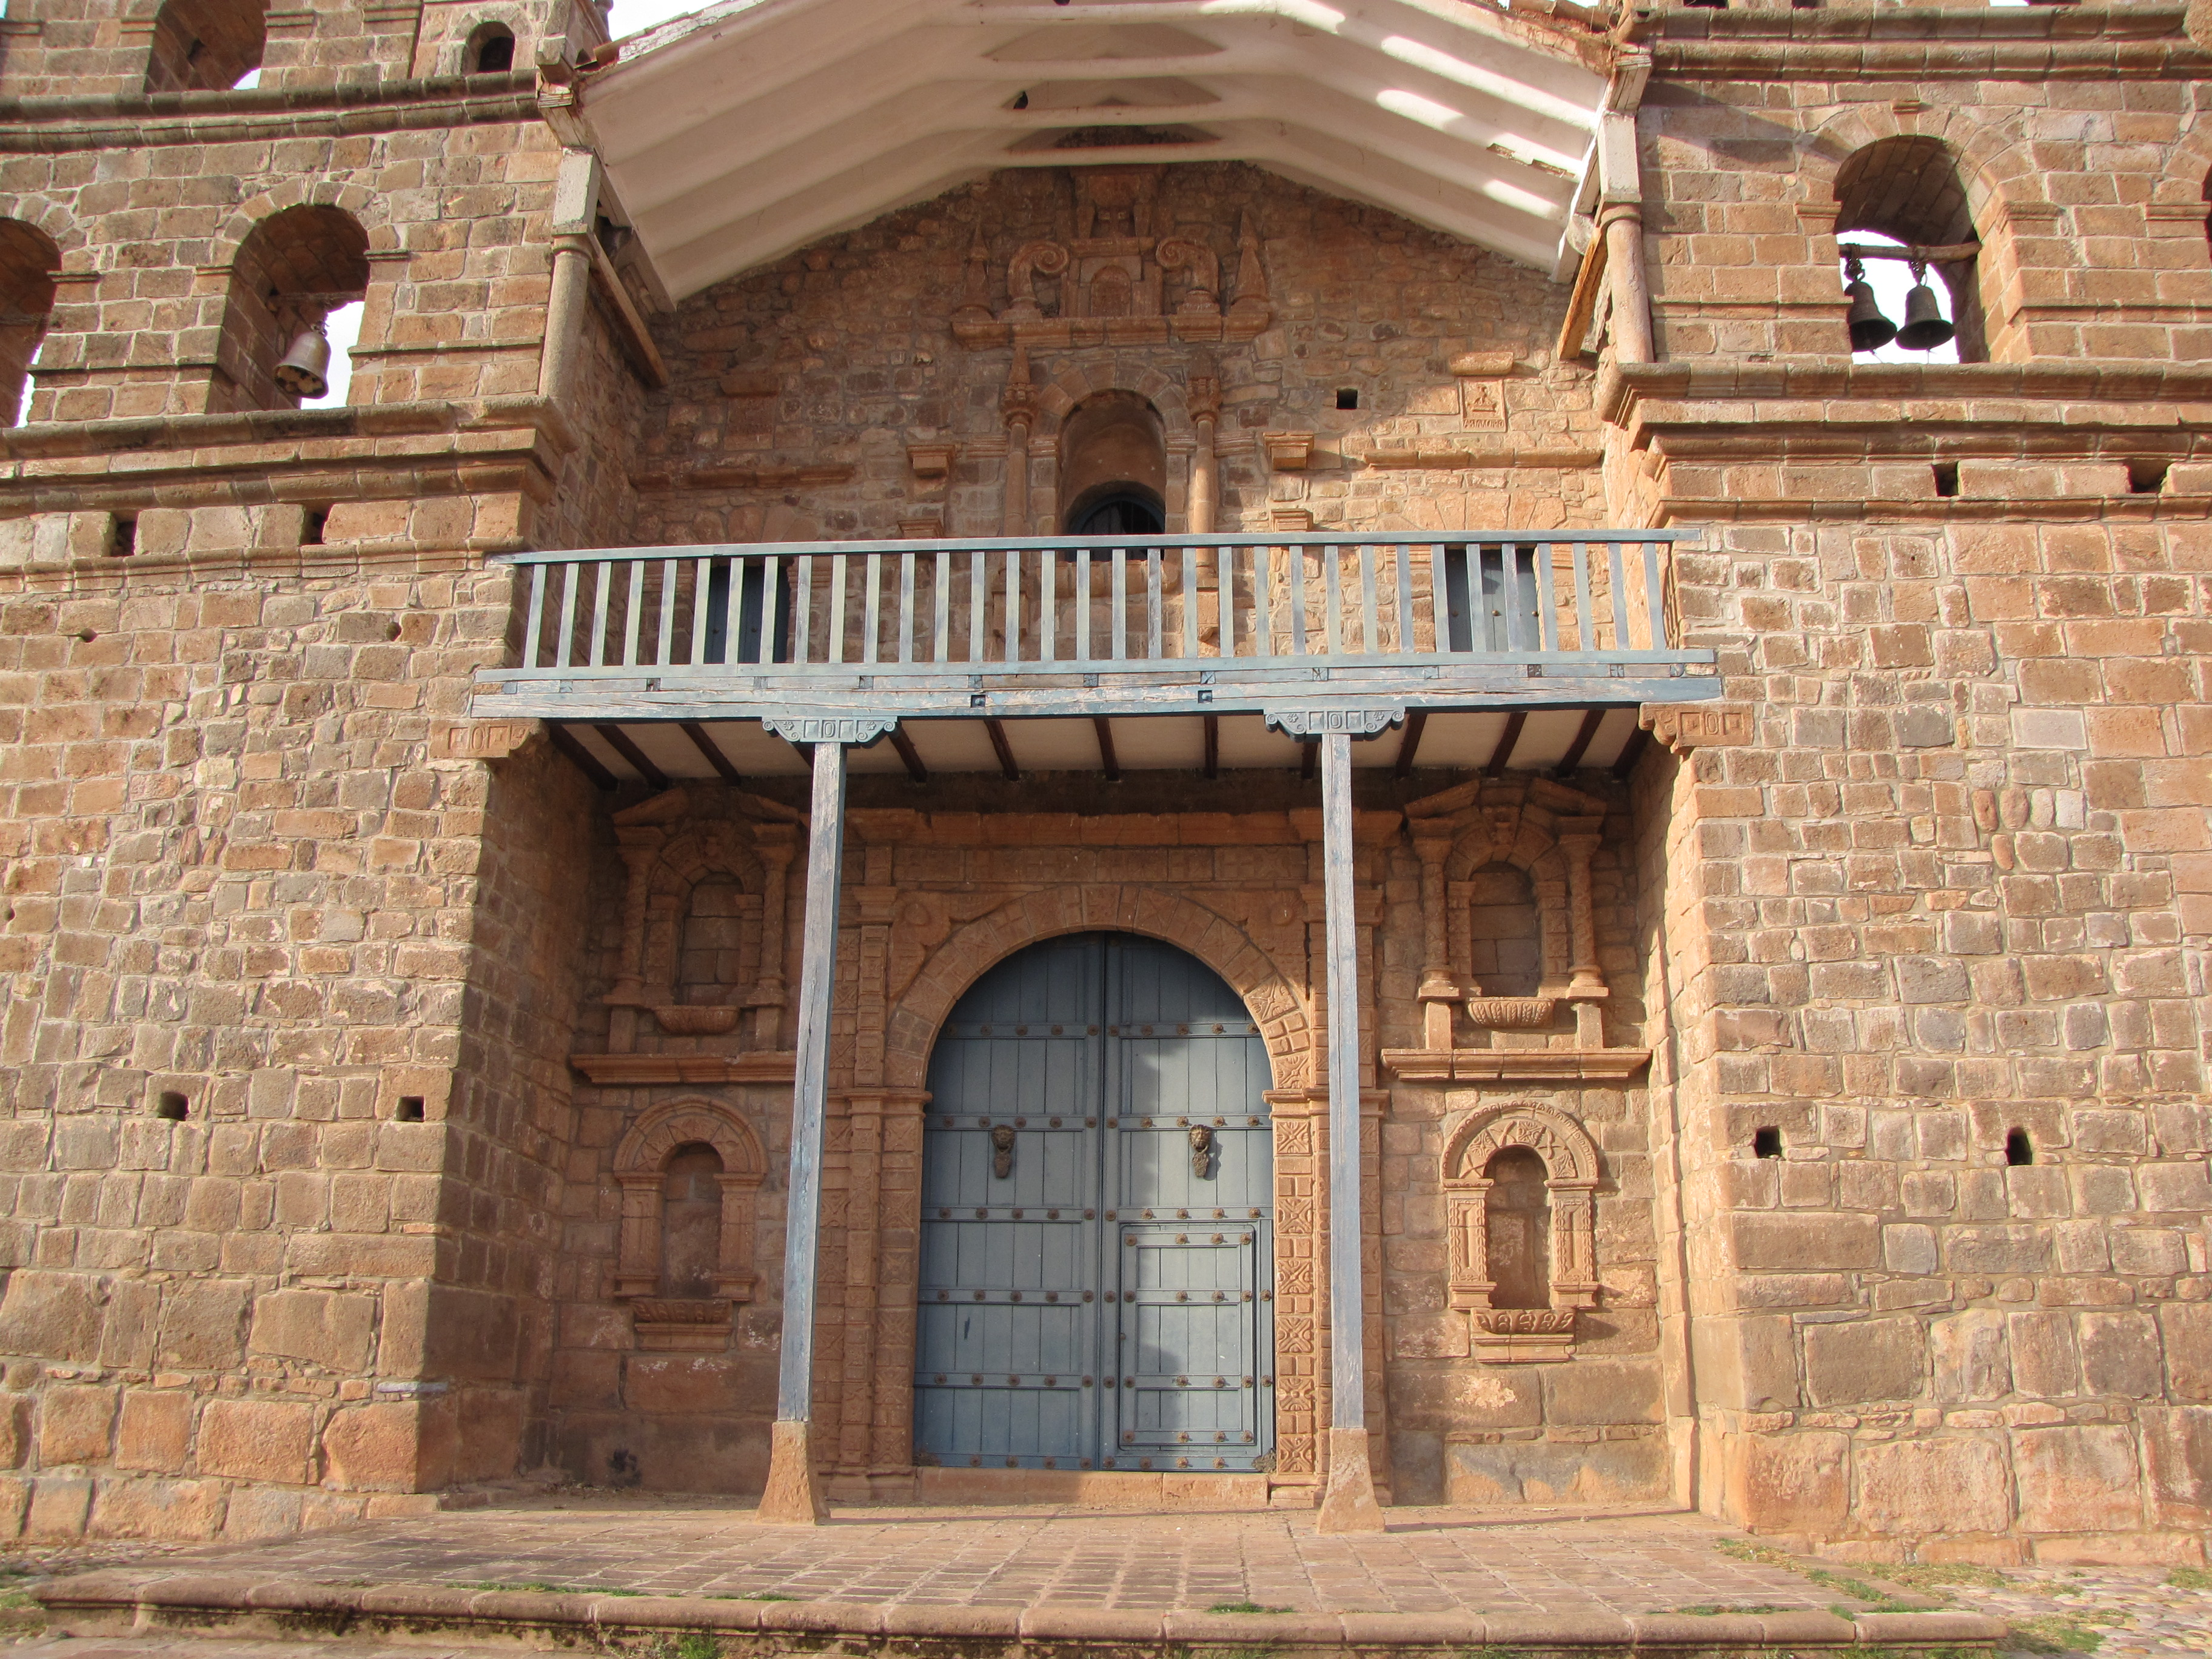 Facade of Tiobamba church in Maras, Cusco